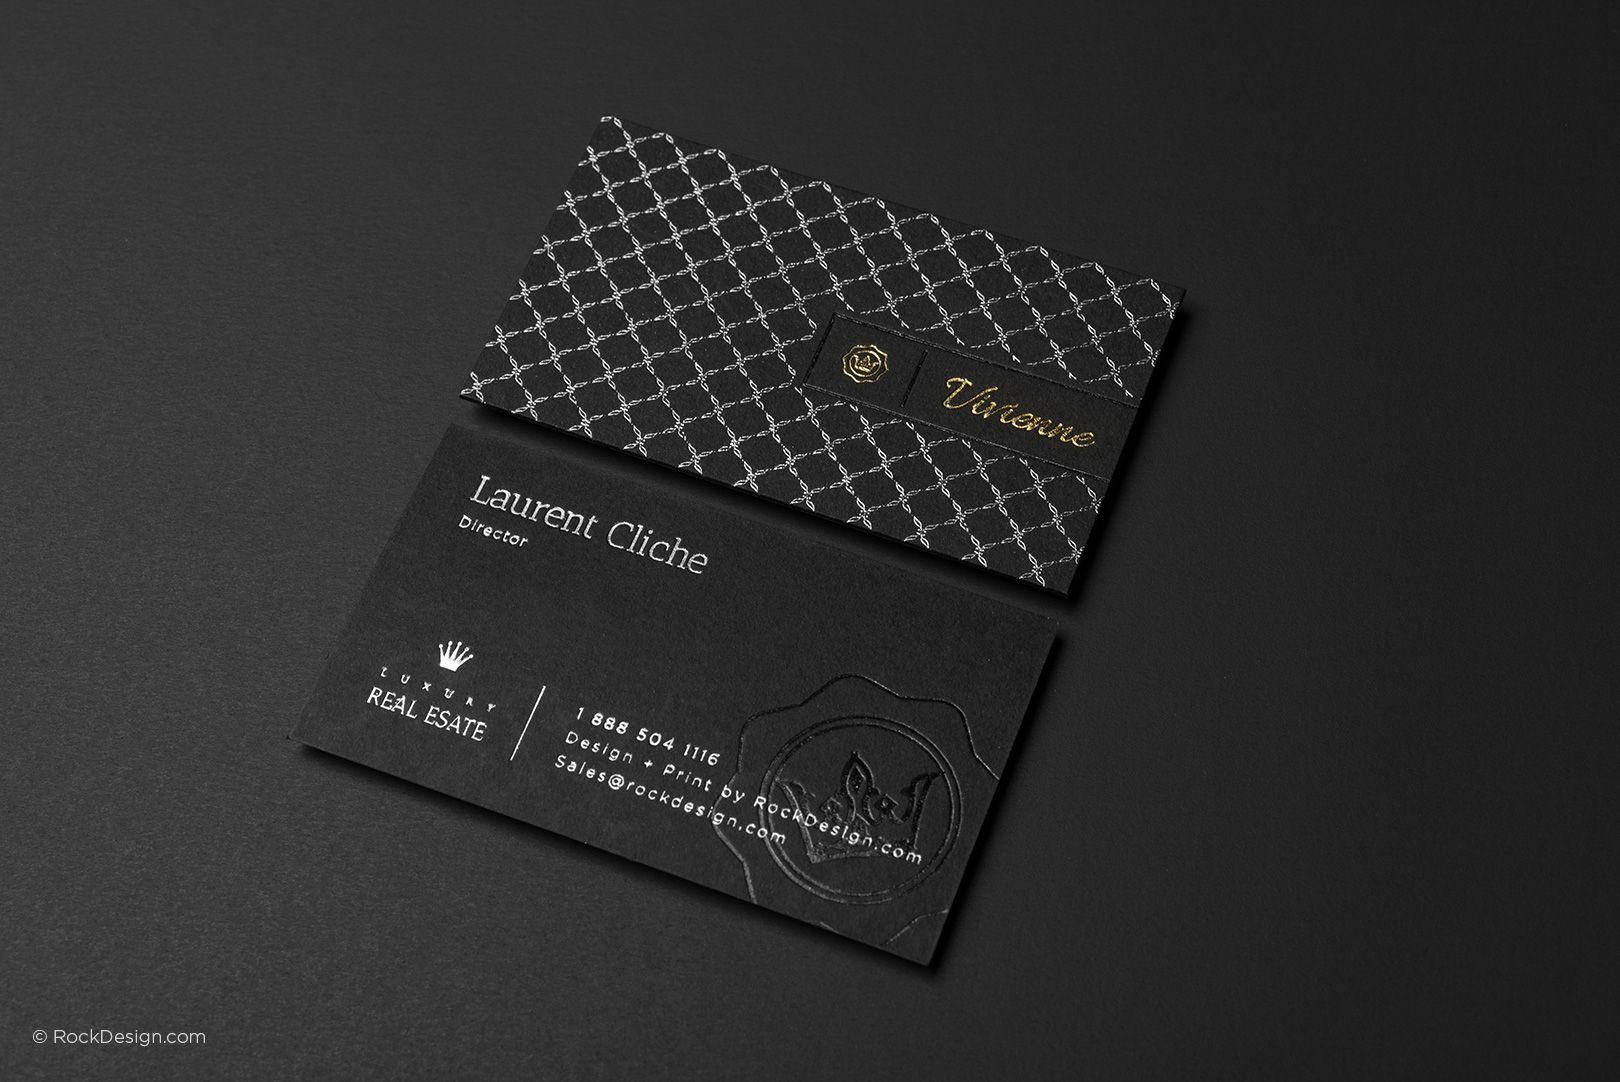 Black business cards office stationary pinterest for Luxurious business cards